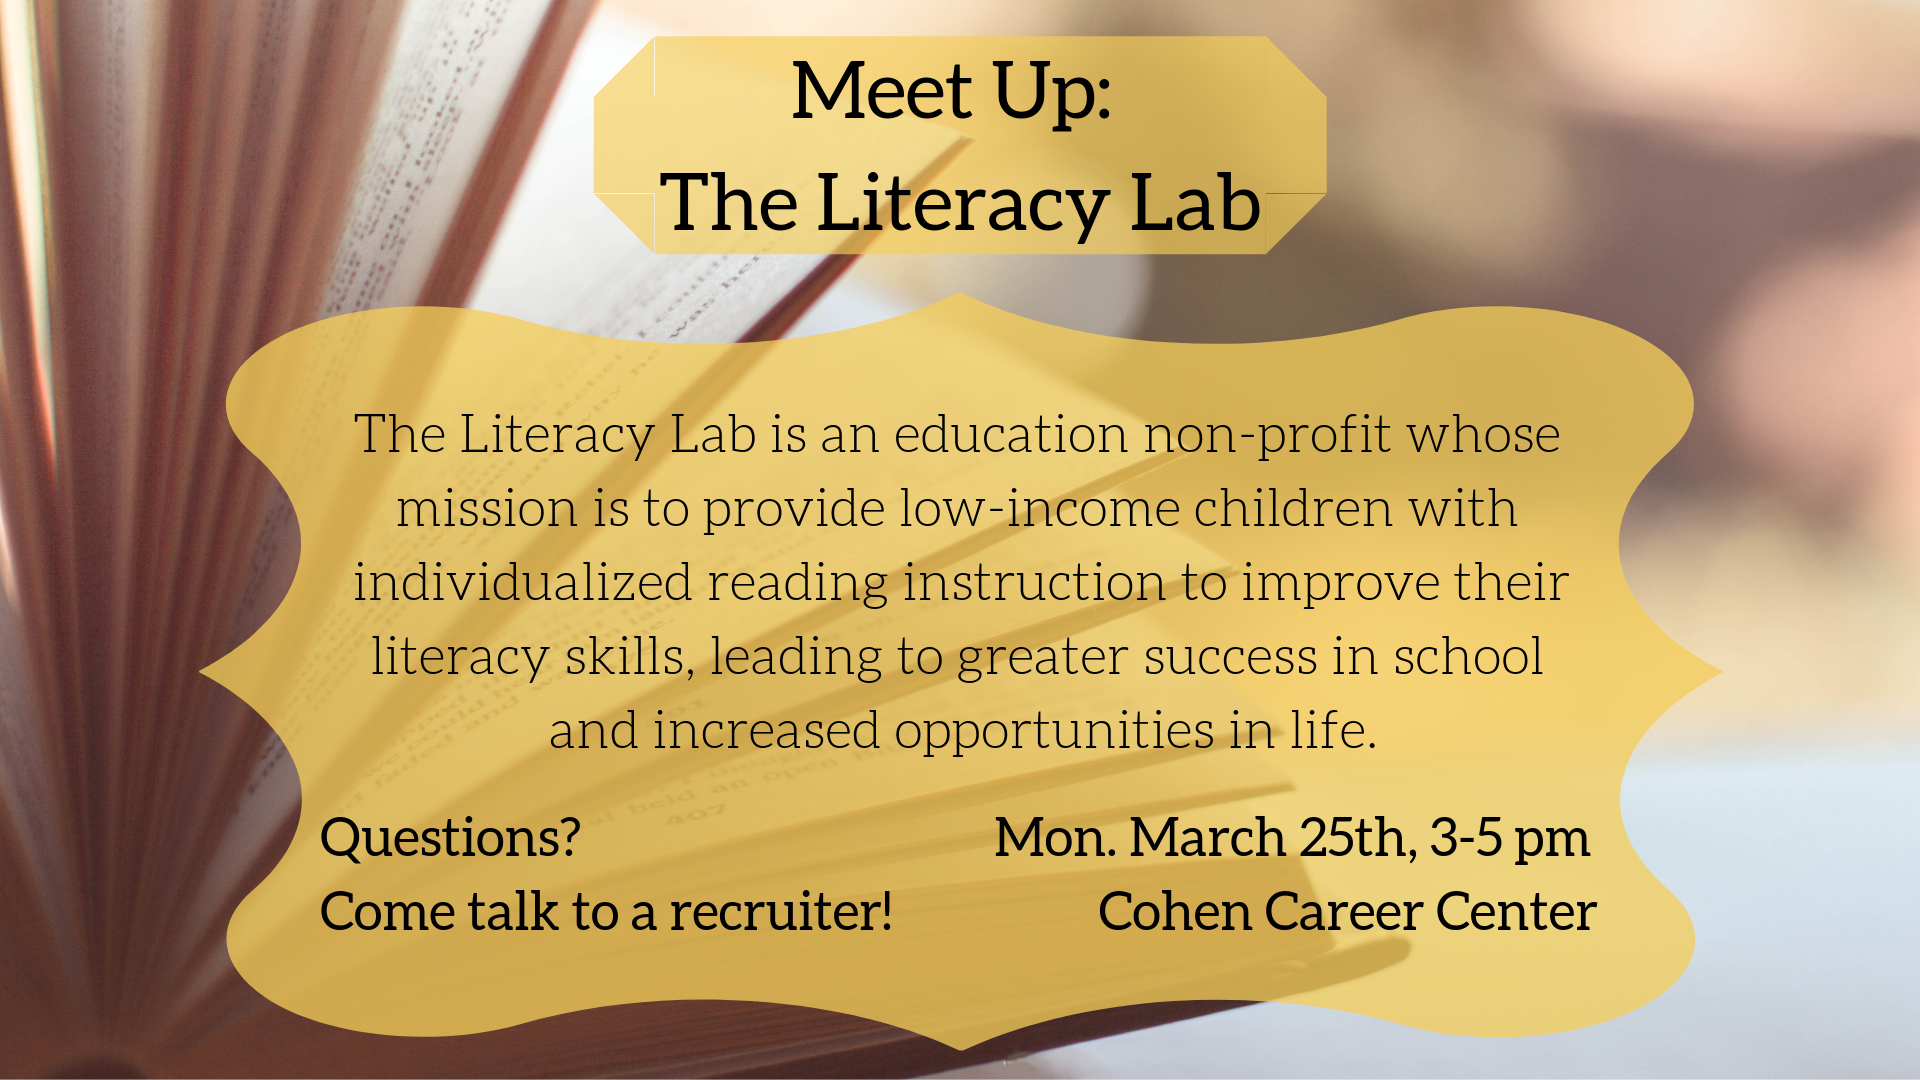 meet-up-with-the-literacy-lab-s19-dh.png